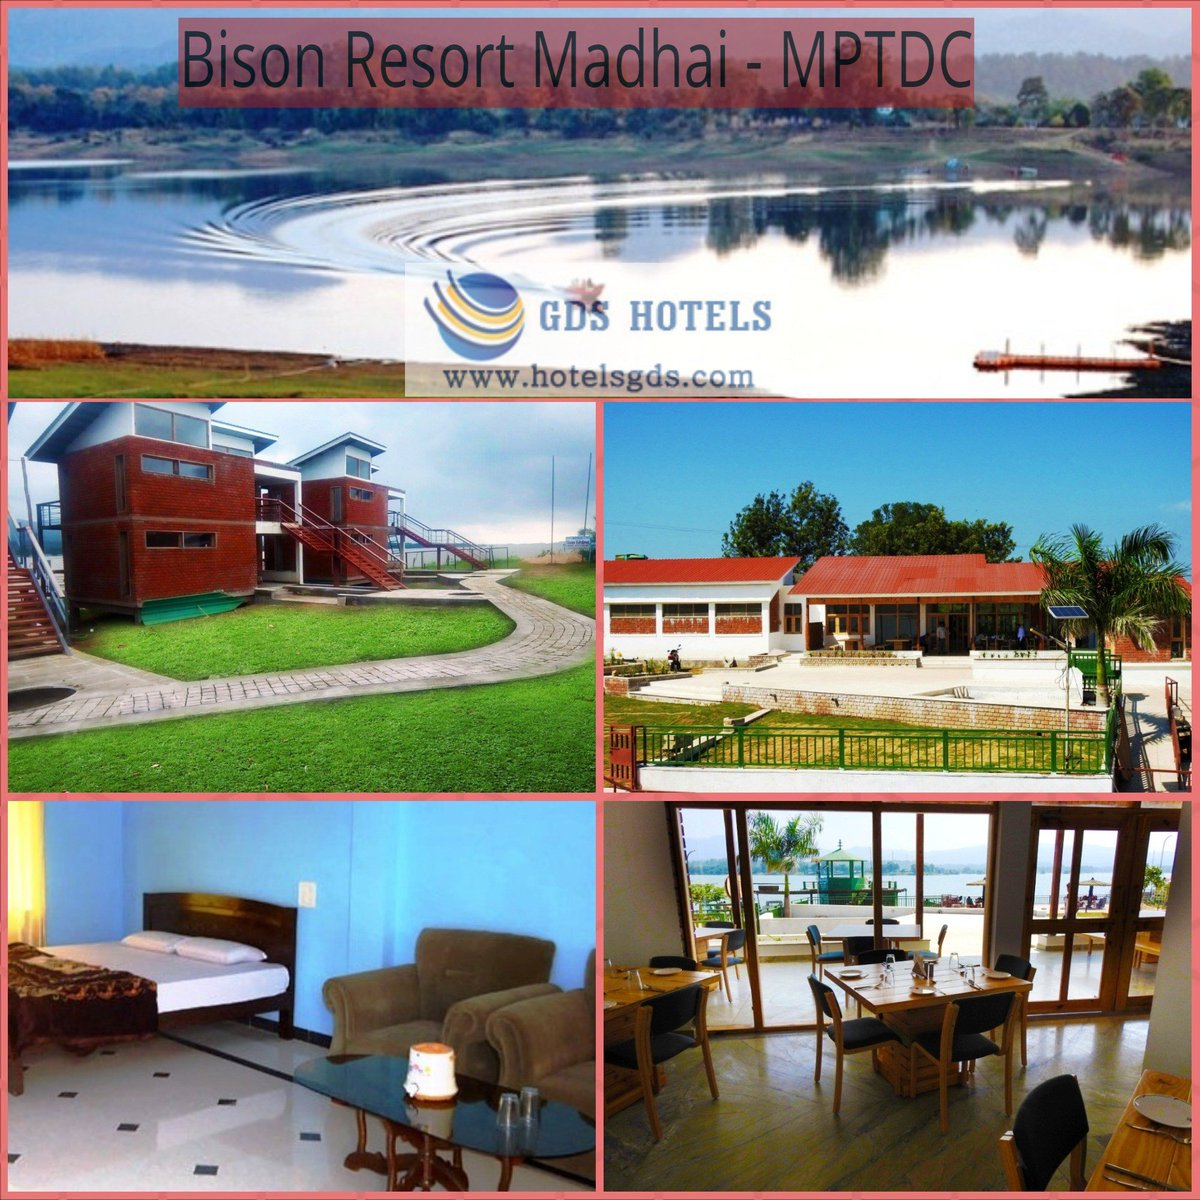 Gds Hotels On Twitter Bisonresort Madhai Mptdc Is Budgethotel In With Best Cl Accommodation Conference Facility